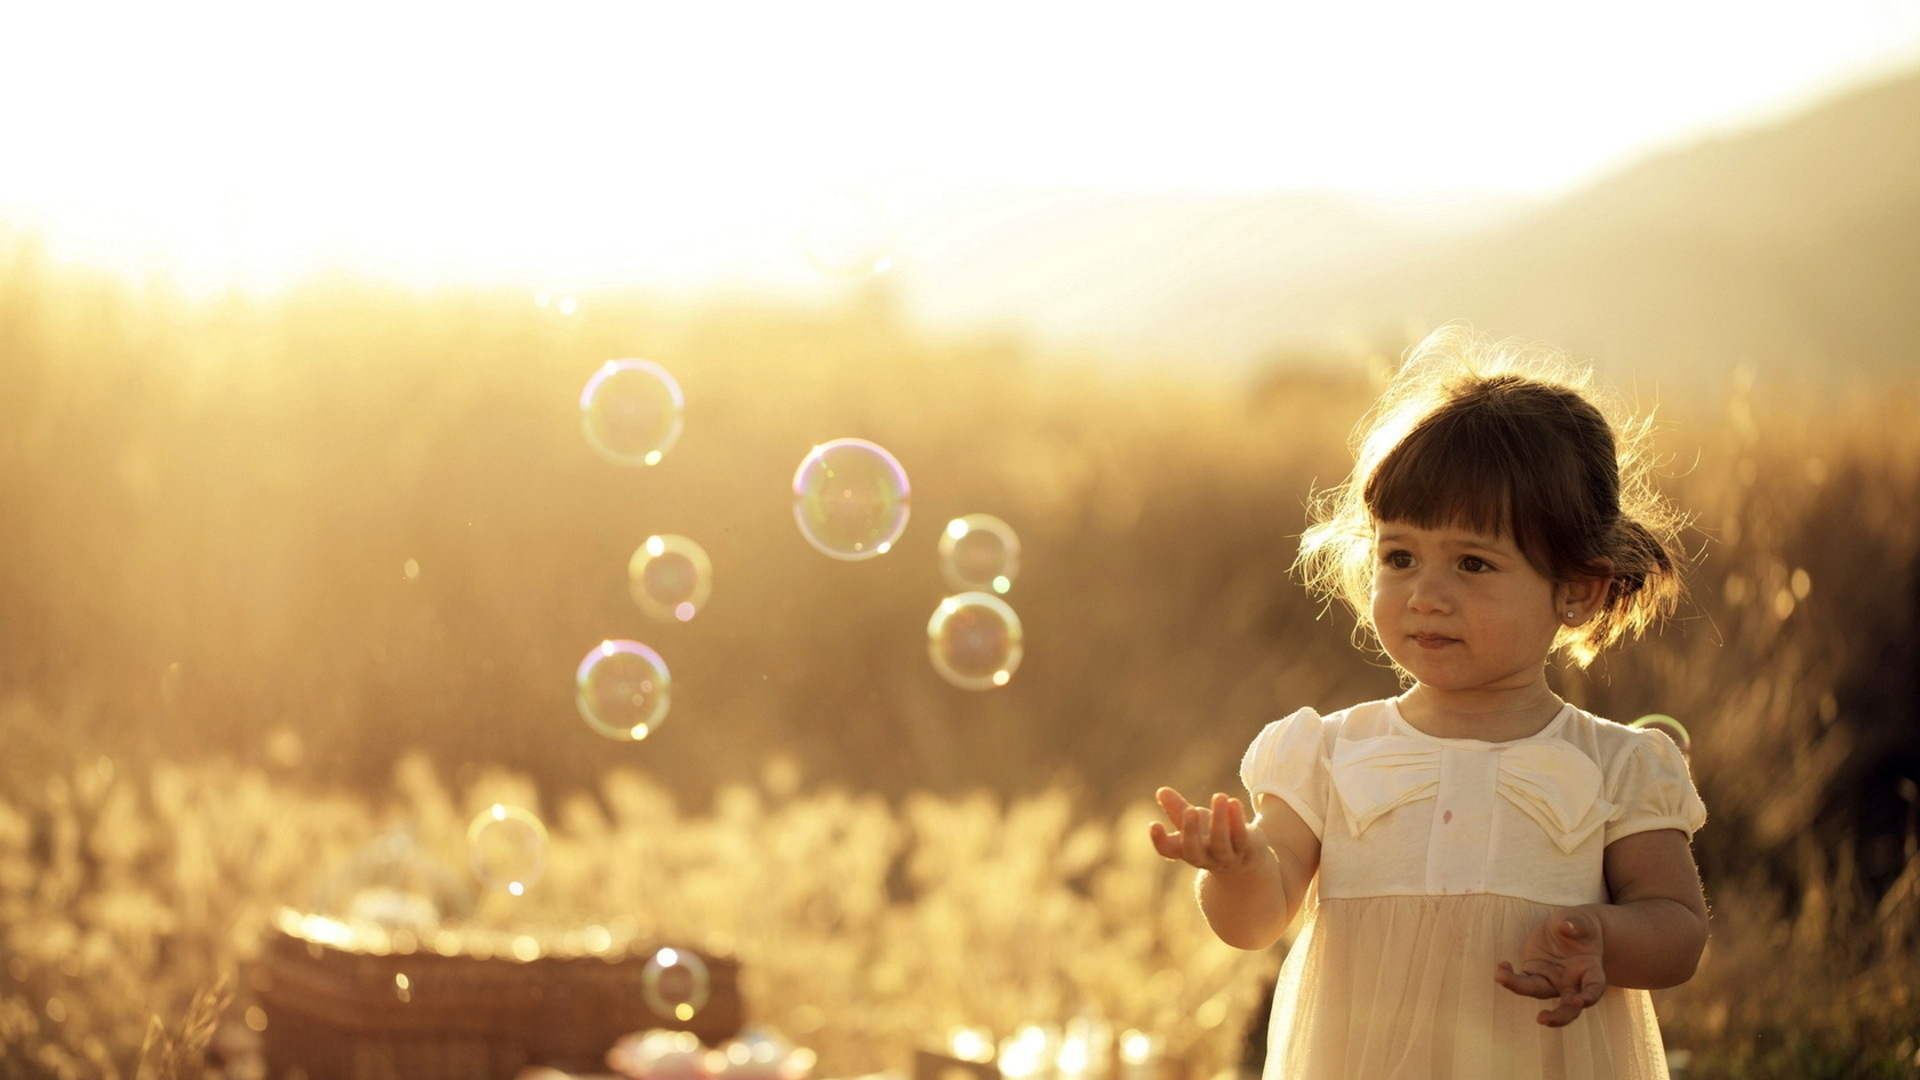 1920x1080-girl-summer-light-bubbles-wallpaper-wpc580996